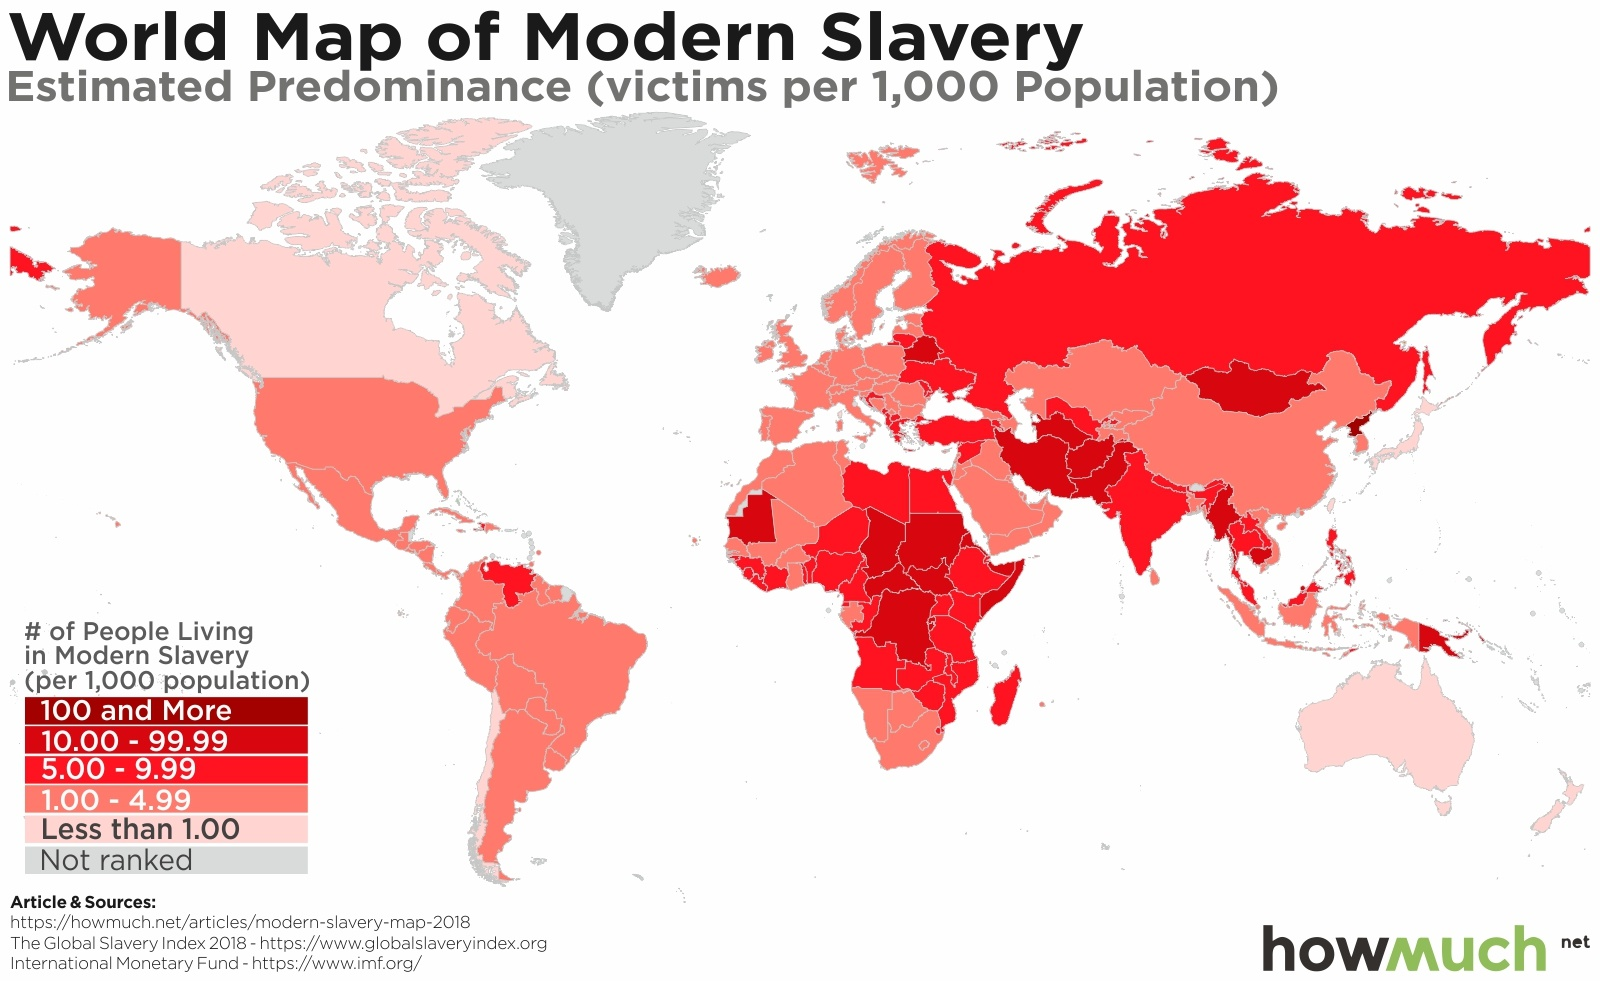 These Maps Reveal the Secret World of Modern Slavery on map one world, map first world, map id world, map my world, map all world, map of the world, map the world's, map your world, map to the world,